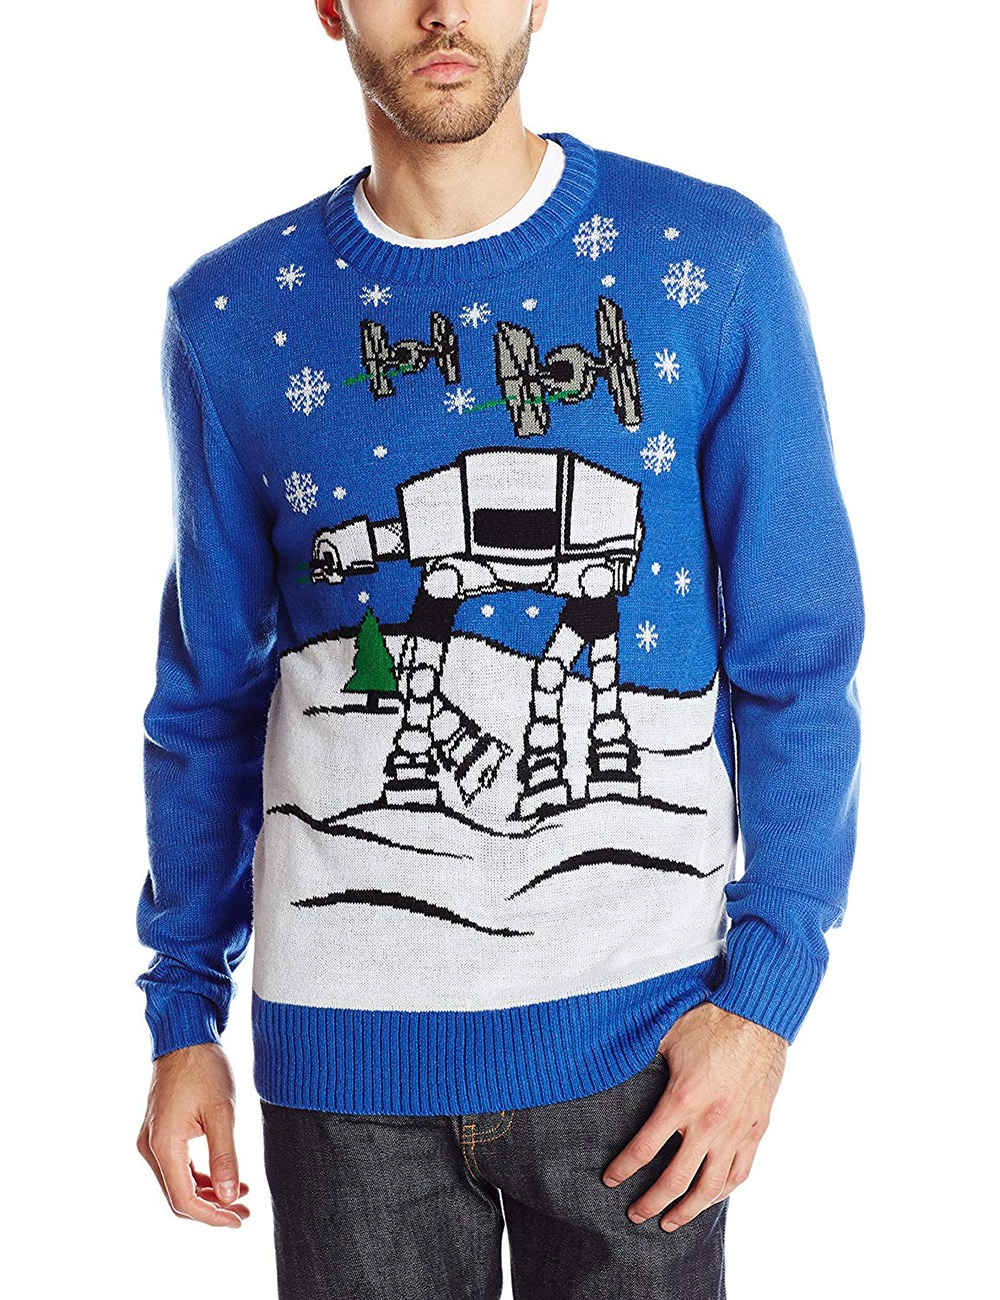 Star Wars Ugly Christmas Sweater 2